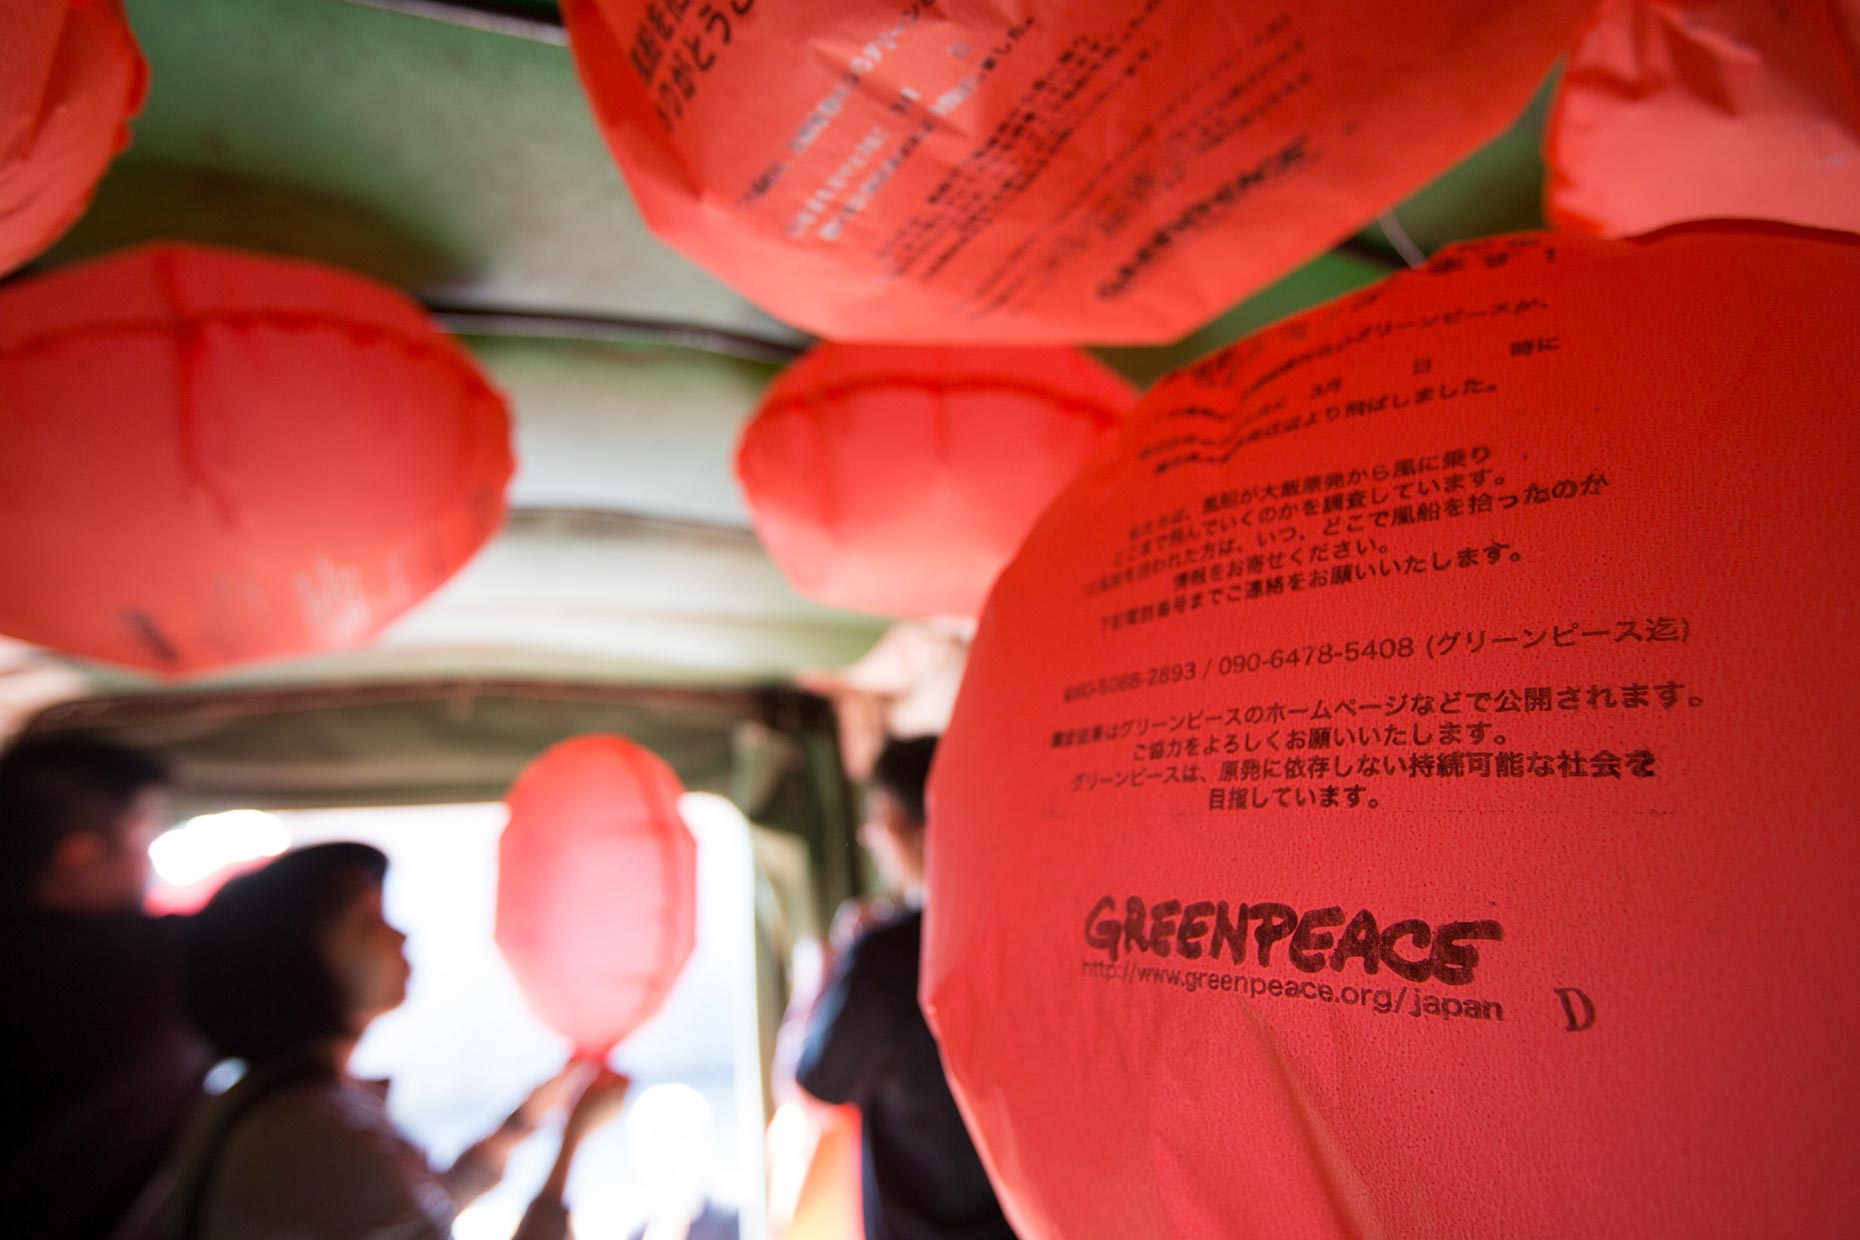 Greenpeace red balloons, by Scotland photographer